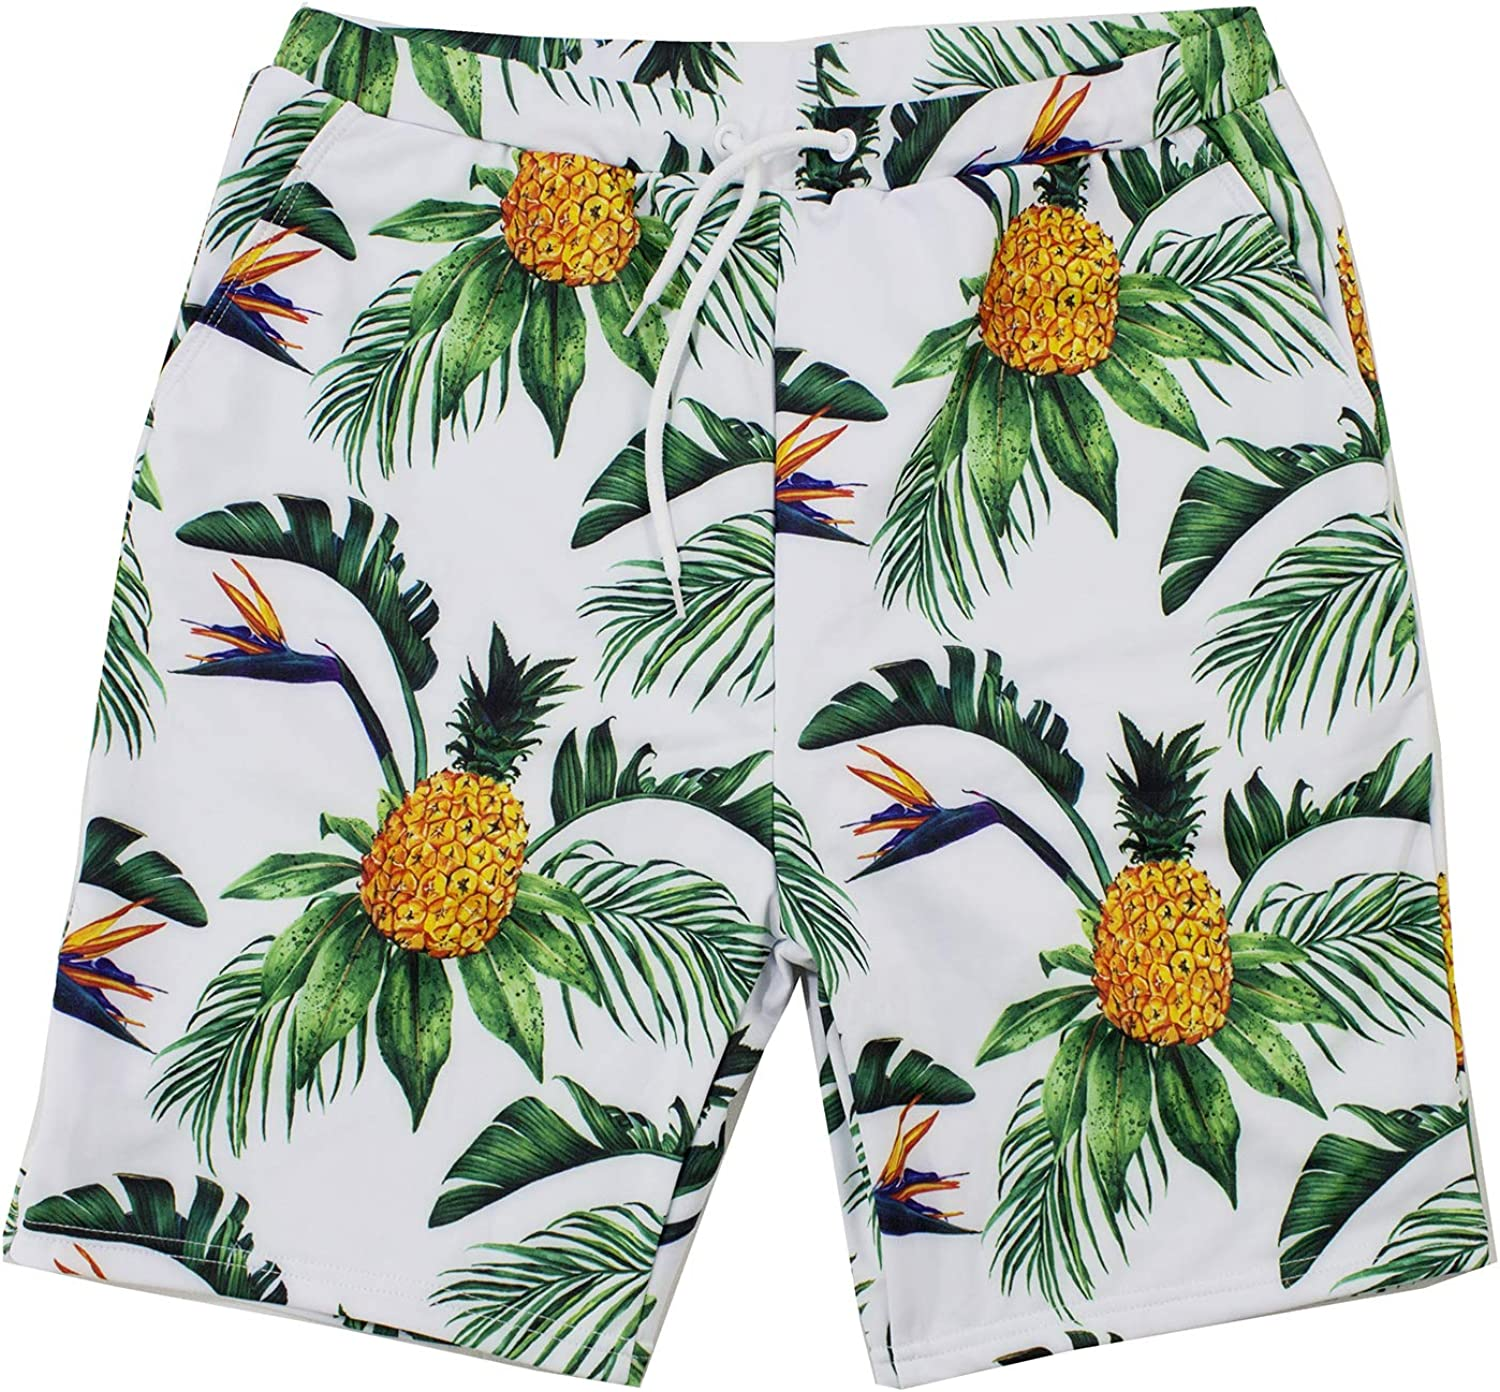 Styles I Ranking TOP10 Love Summer Family New products, world's highest quality popular! Print Pineapple Matching Sw Swimwear